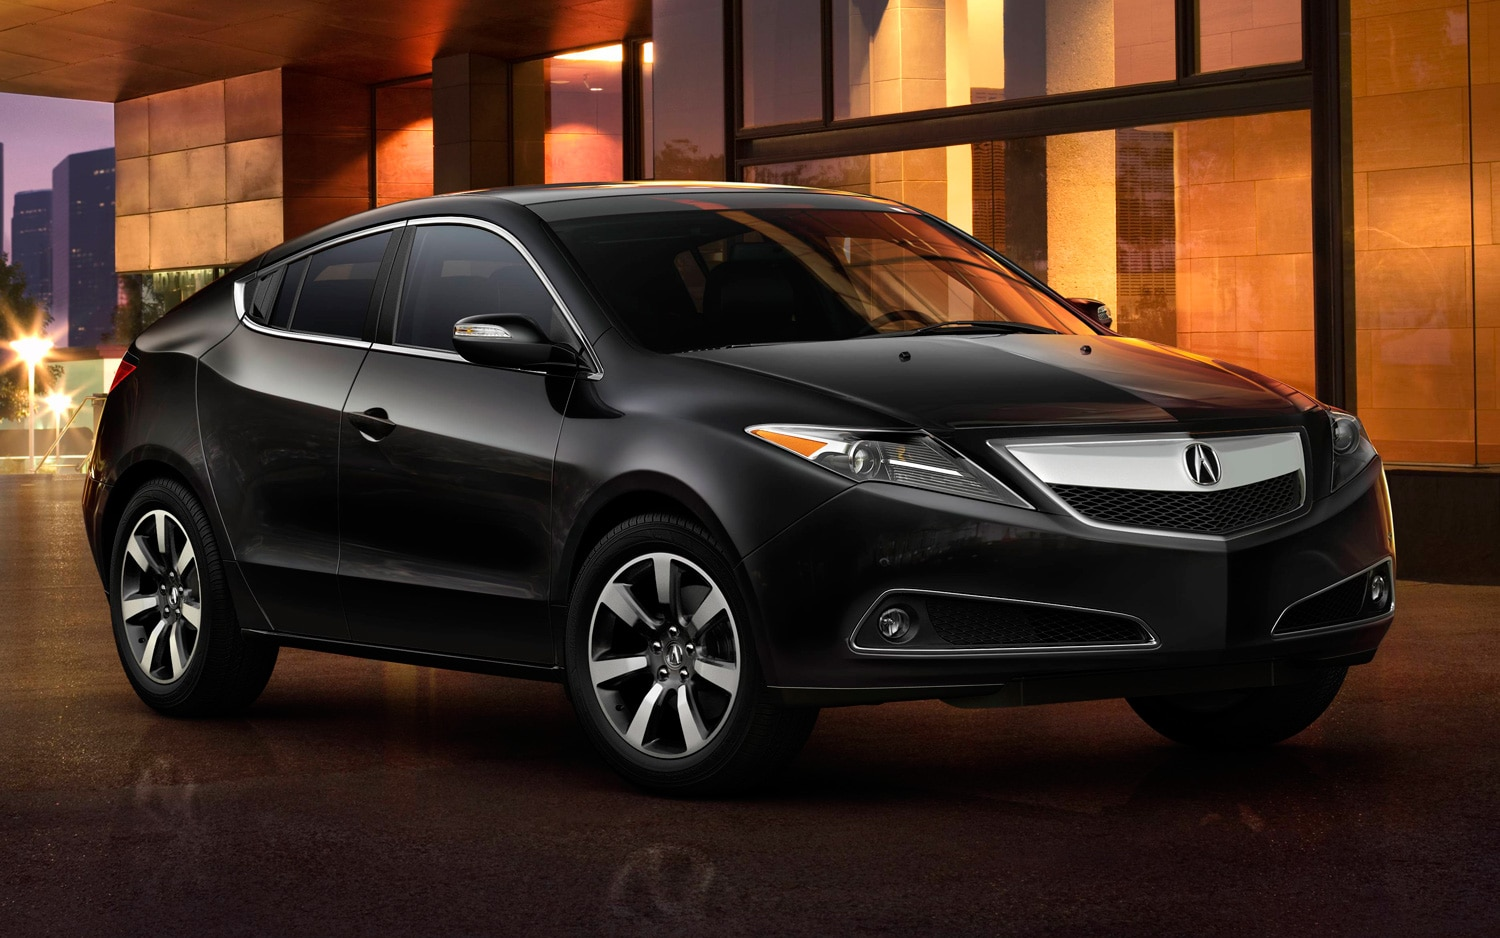 2013 Acura ZDX Front View In Black1